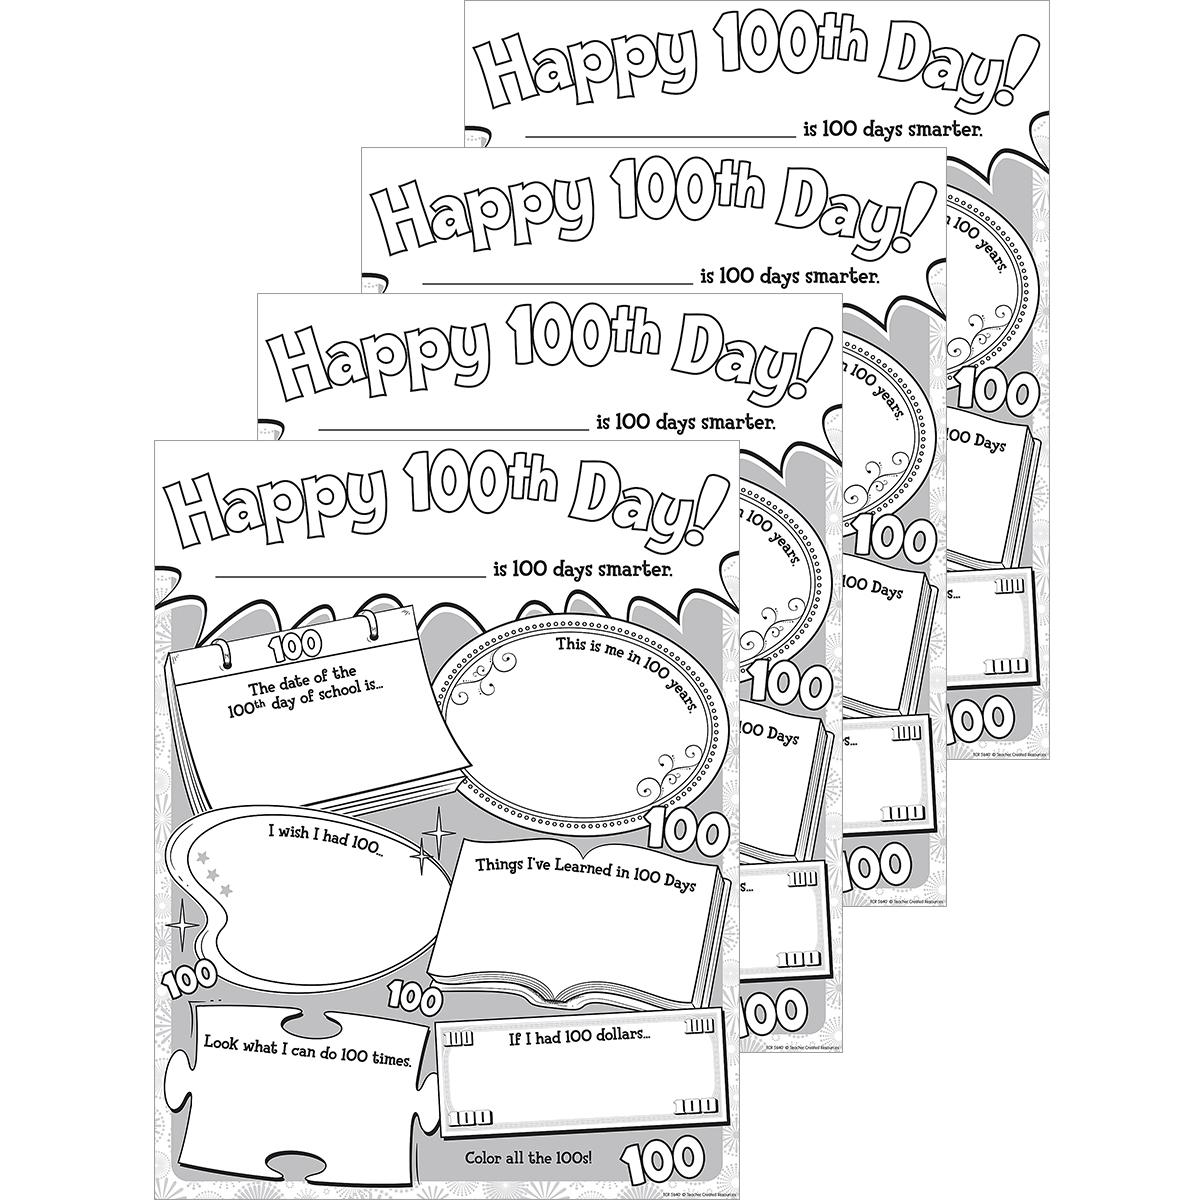 Happy 100th Day! Poster Papers